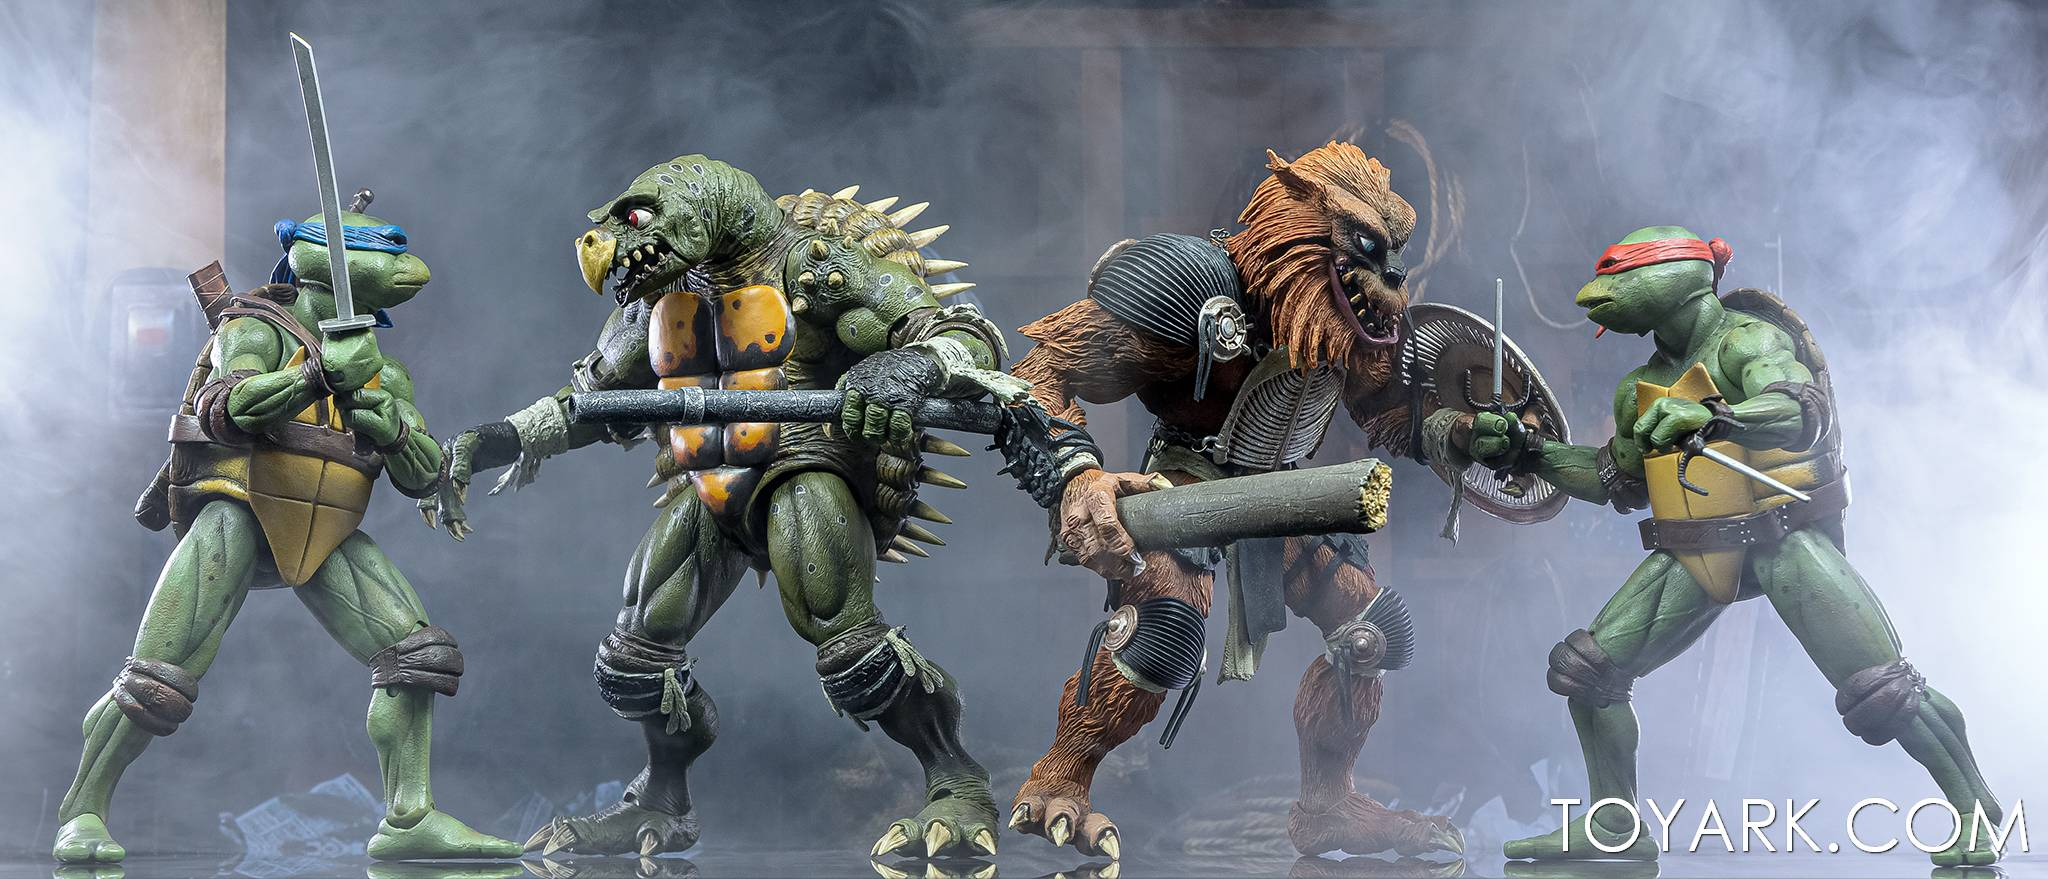 https://news.toyark.com/wp-content/uploads/sites/4/2021/03/NECA-Tokka-and-Rahzar-TMNT-II-042.jpg